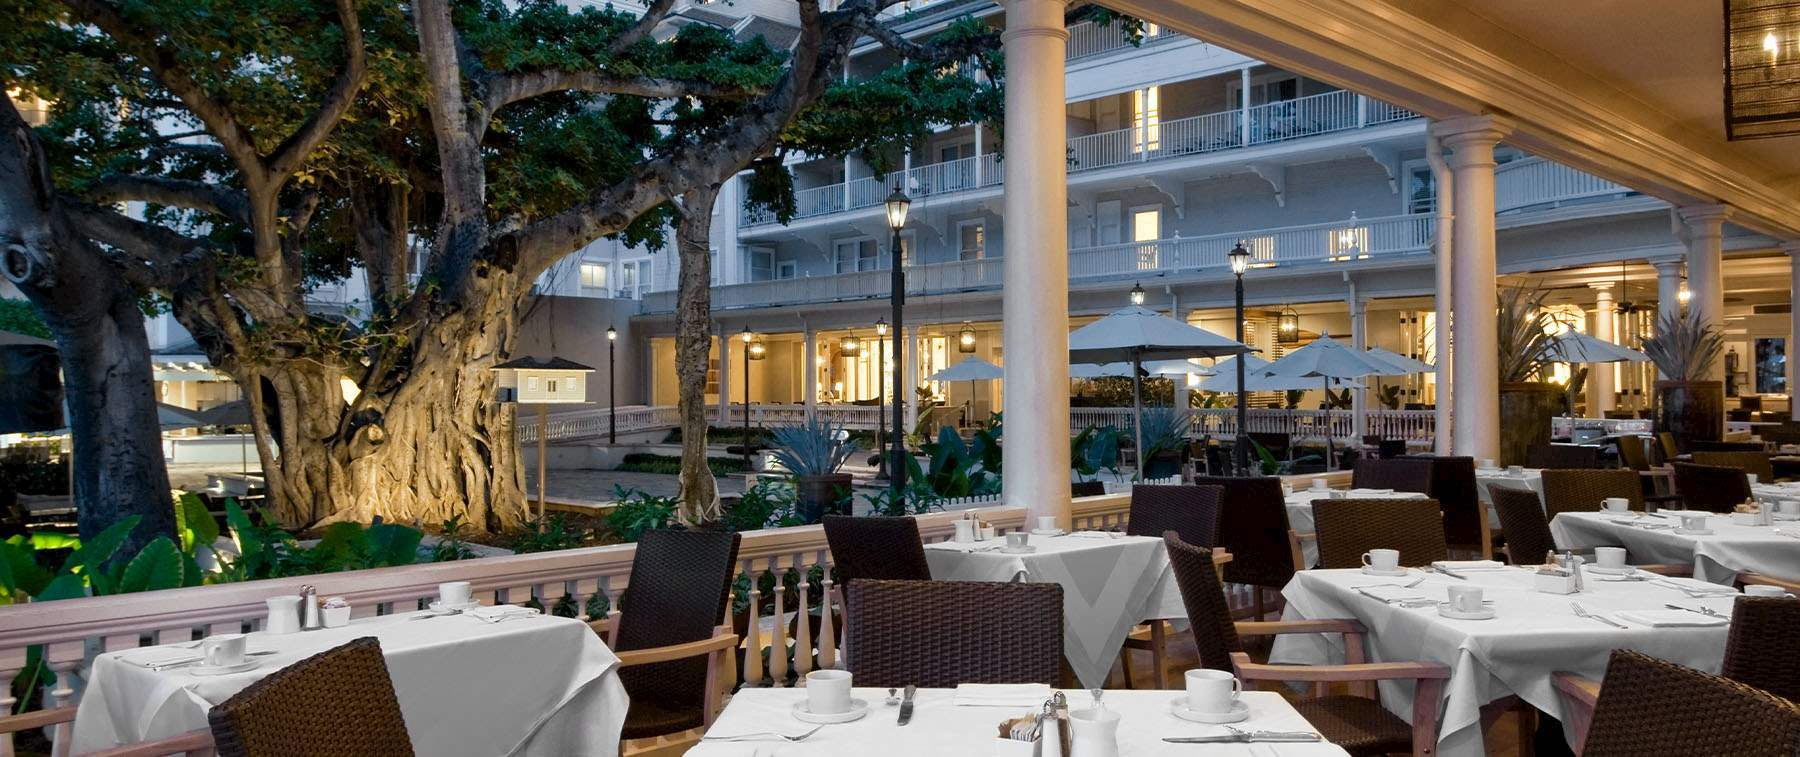 opt to dine indoors under original 19th century architecture in the Grand Salon